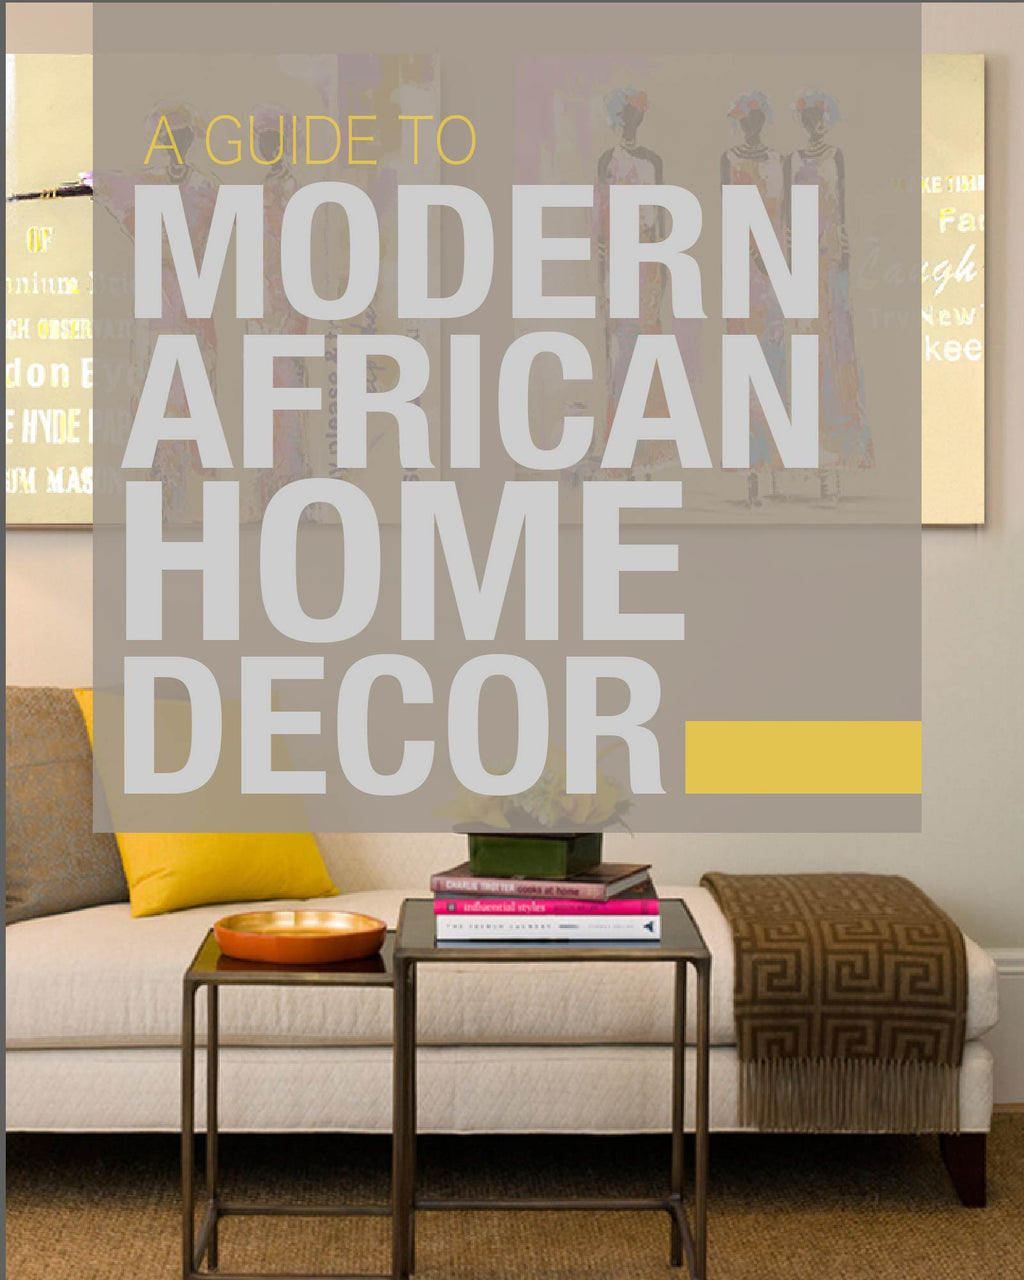 African Home Décor: How to Get the Perfect Balance of a Modern and Cultural Home